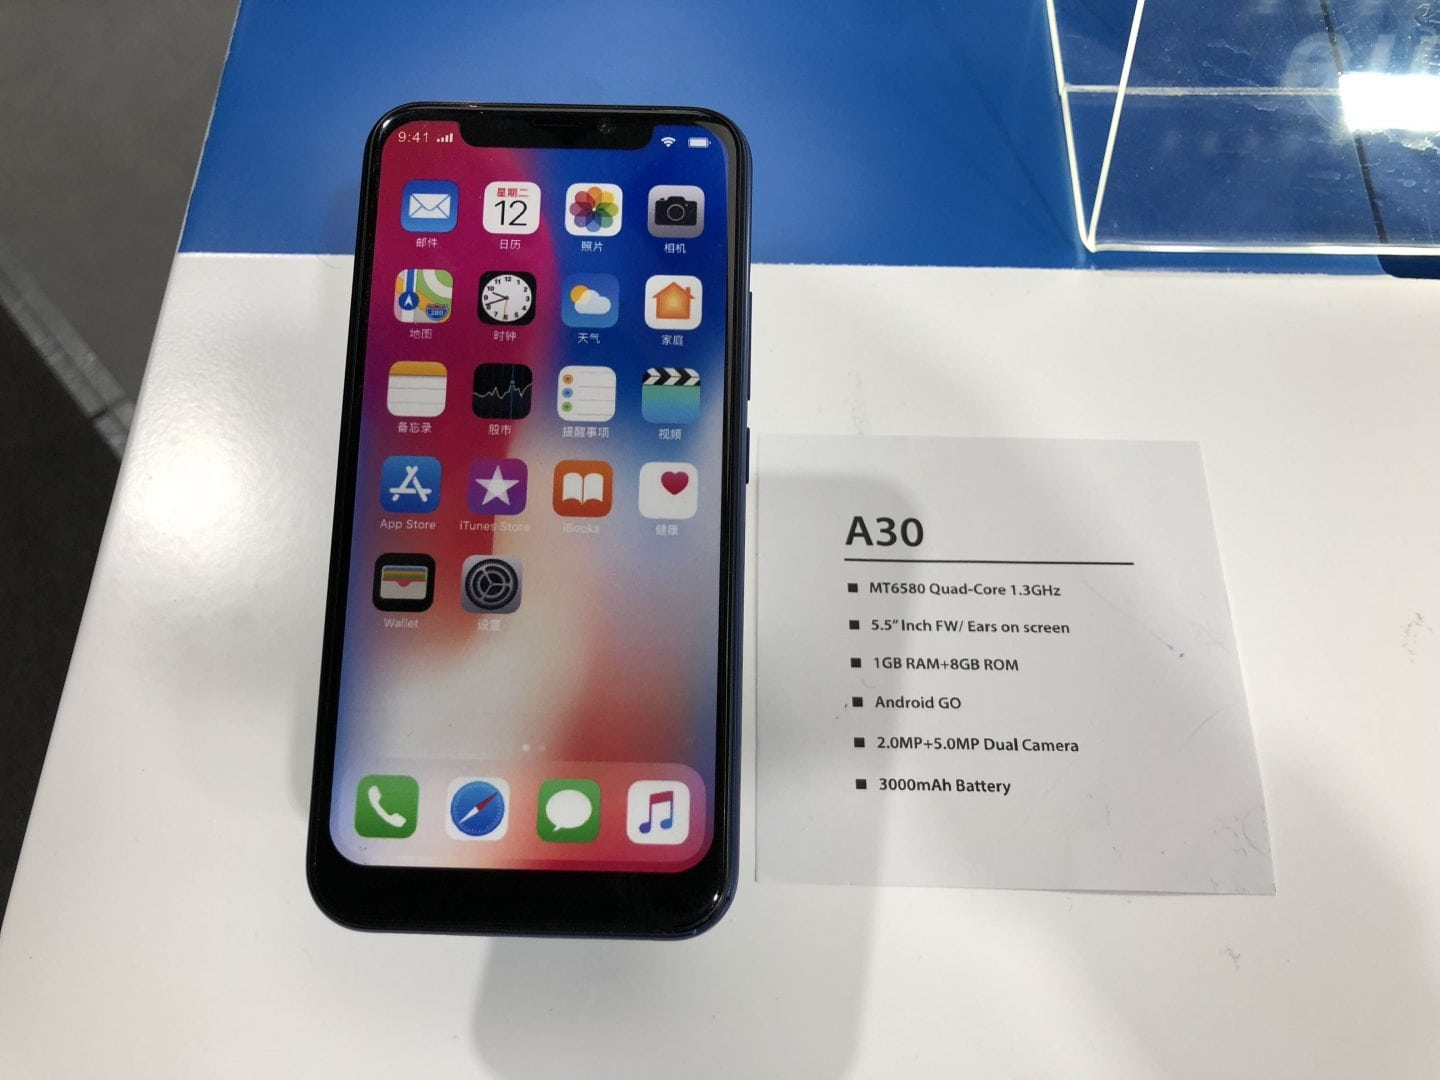 a30 Phone IPhone x look alike